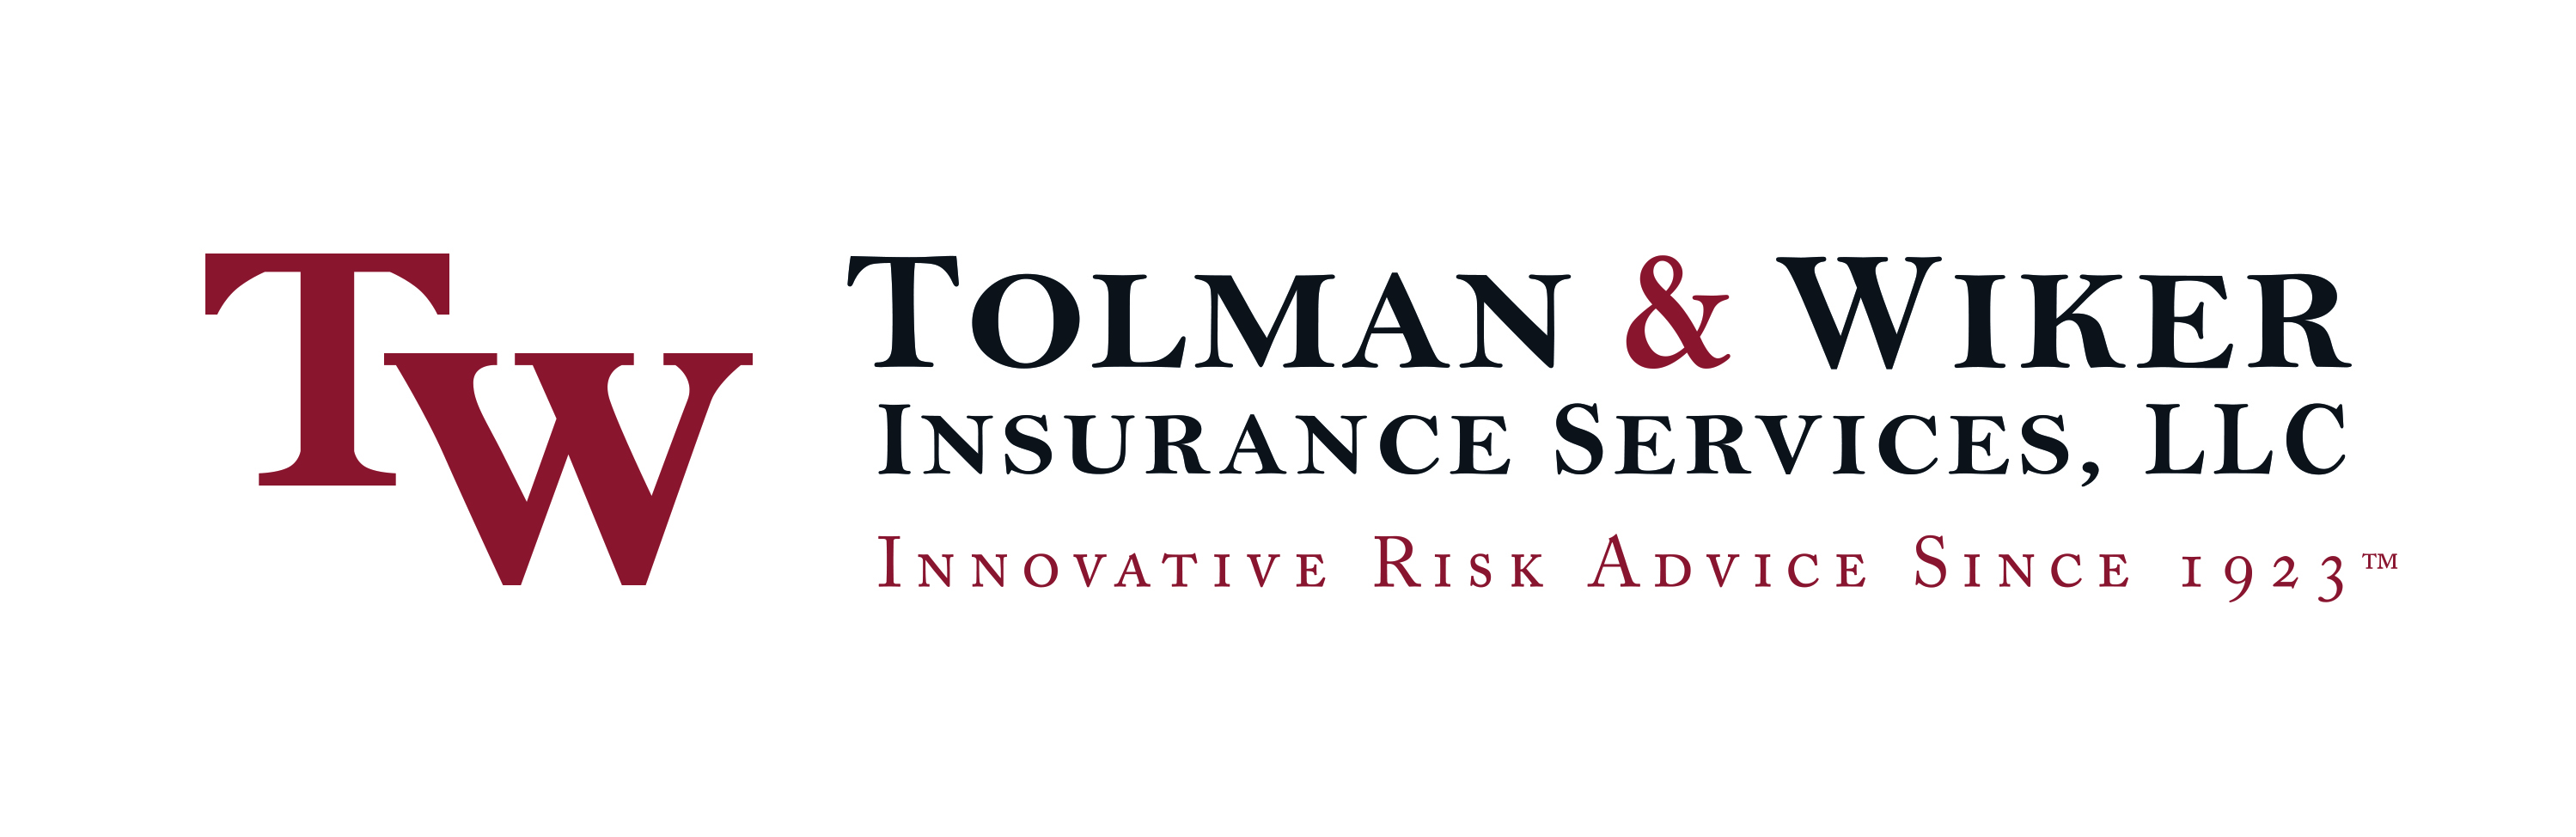 Tolman & Wiker Insurance Services, LLC.